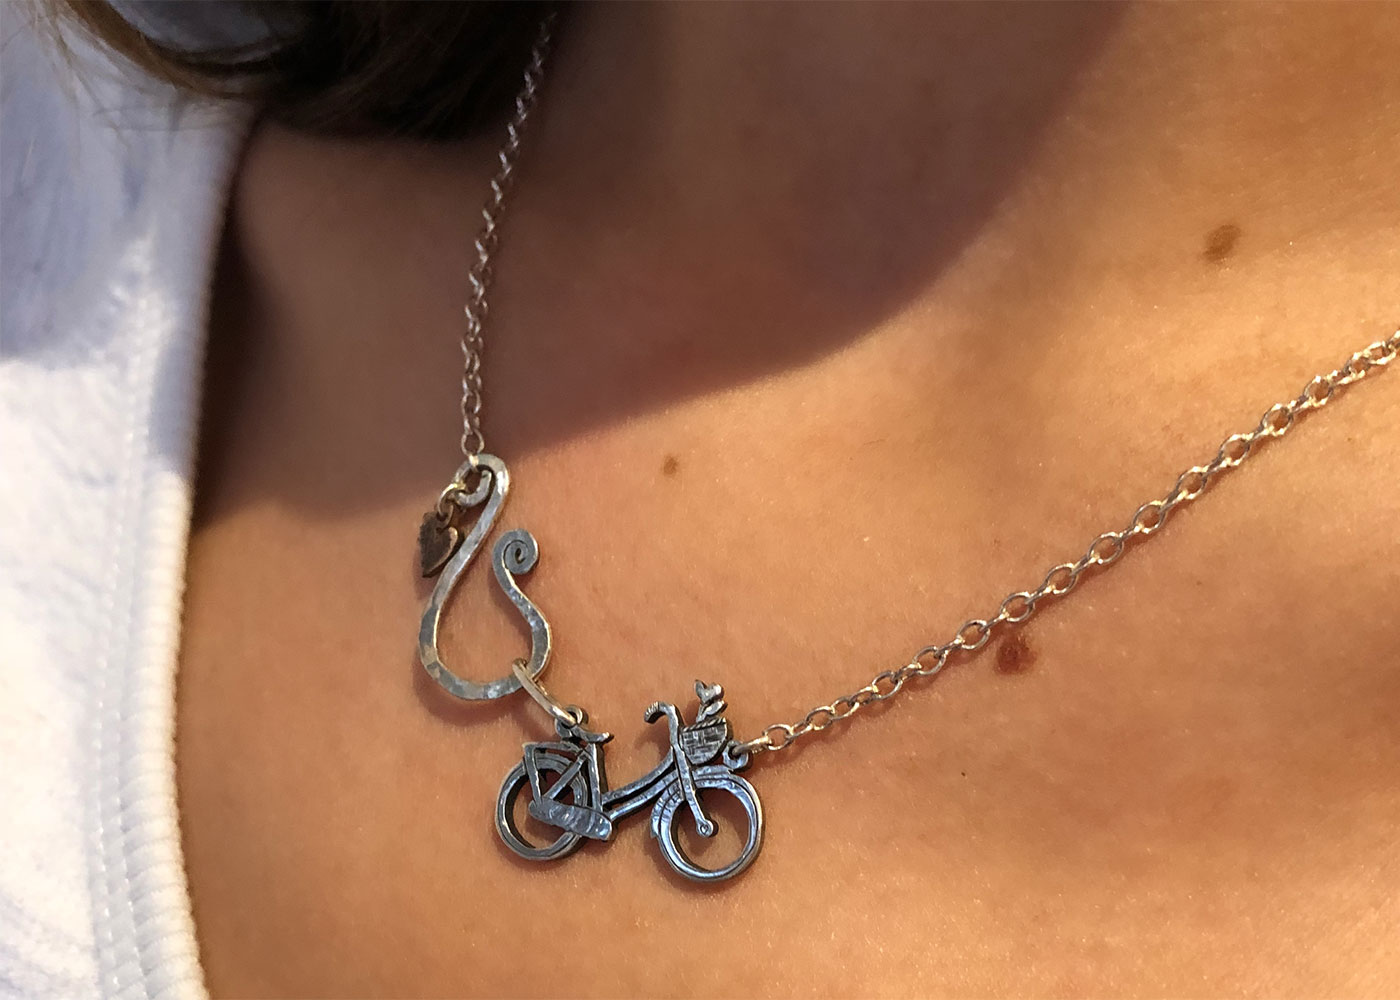 Bicycle necklace handcrafted and created with environmental awareness. Recycled silver coin jewellery made in Cambridge